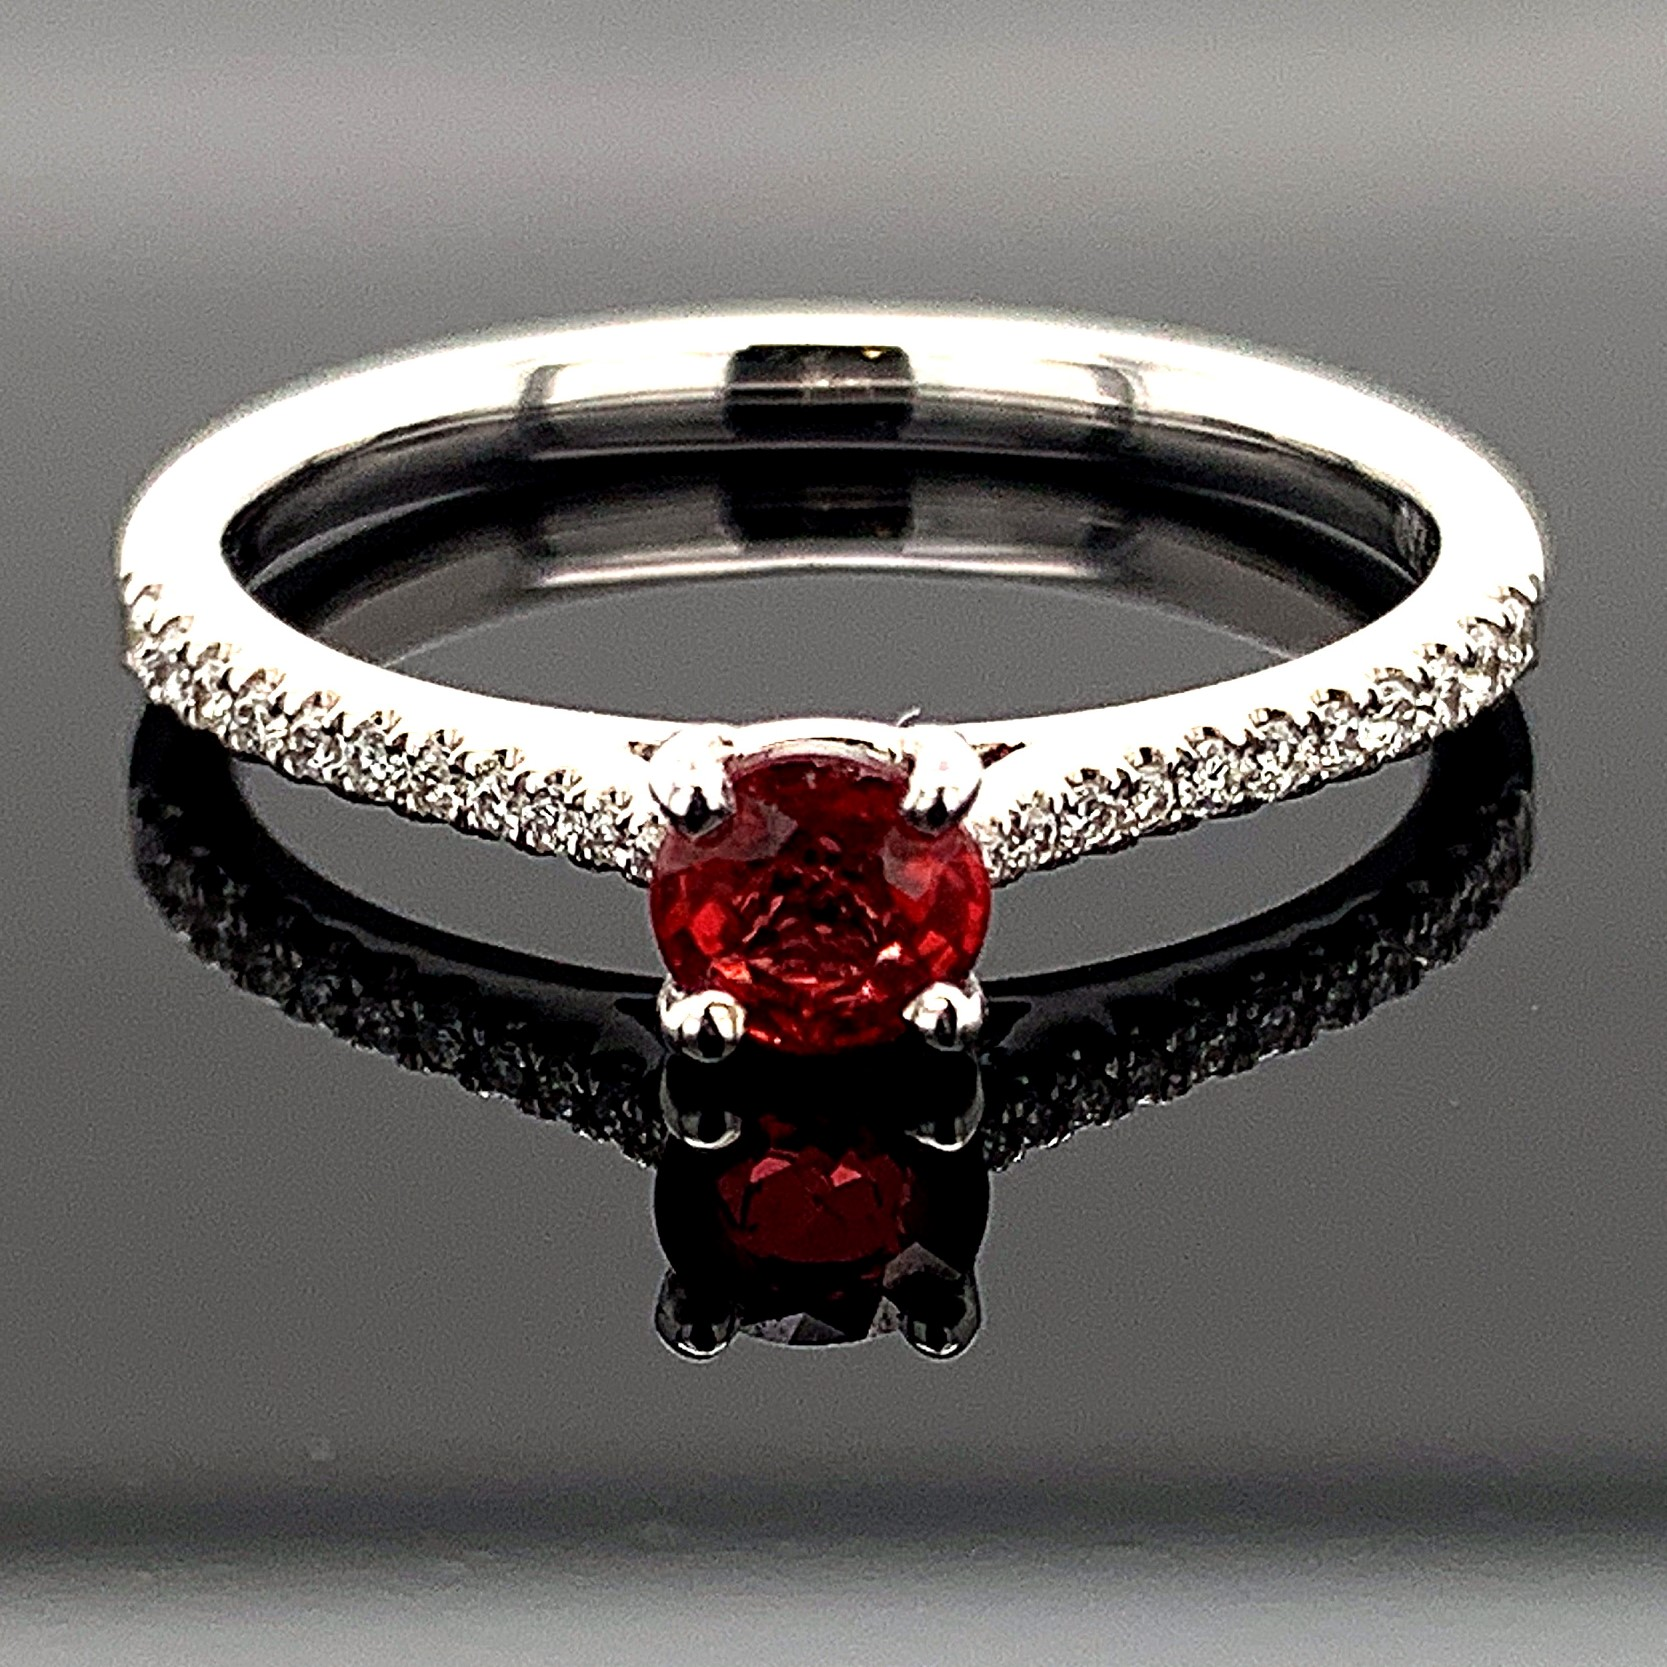 "Women's Colored Stone Rings - 18K White Gold ""Fire Ruby"" And Diamond Ring"